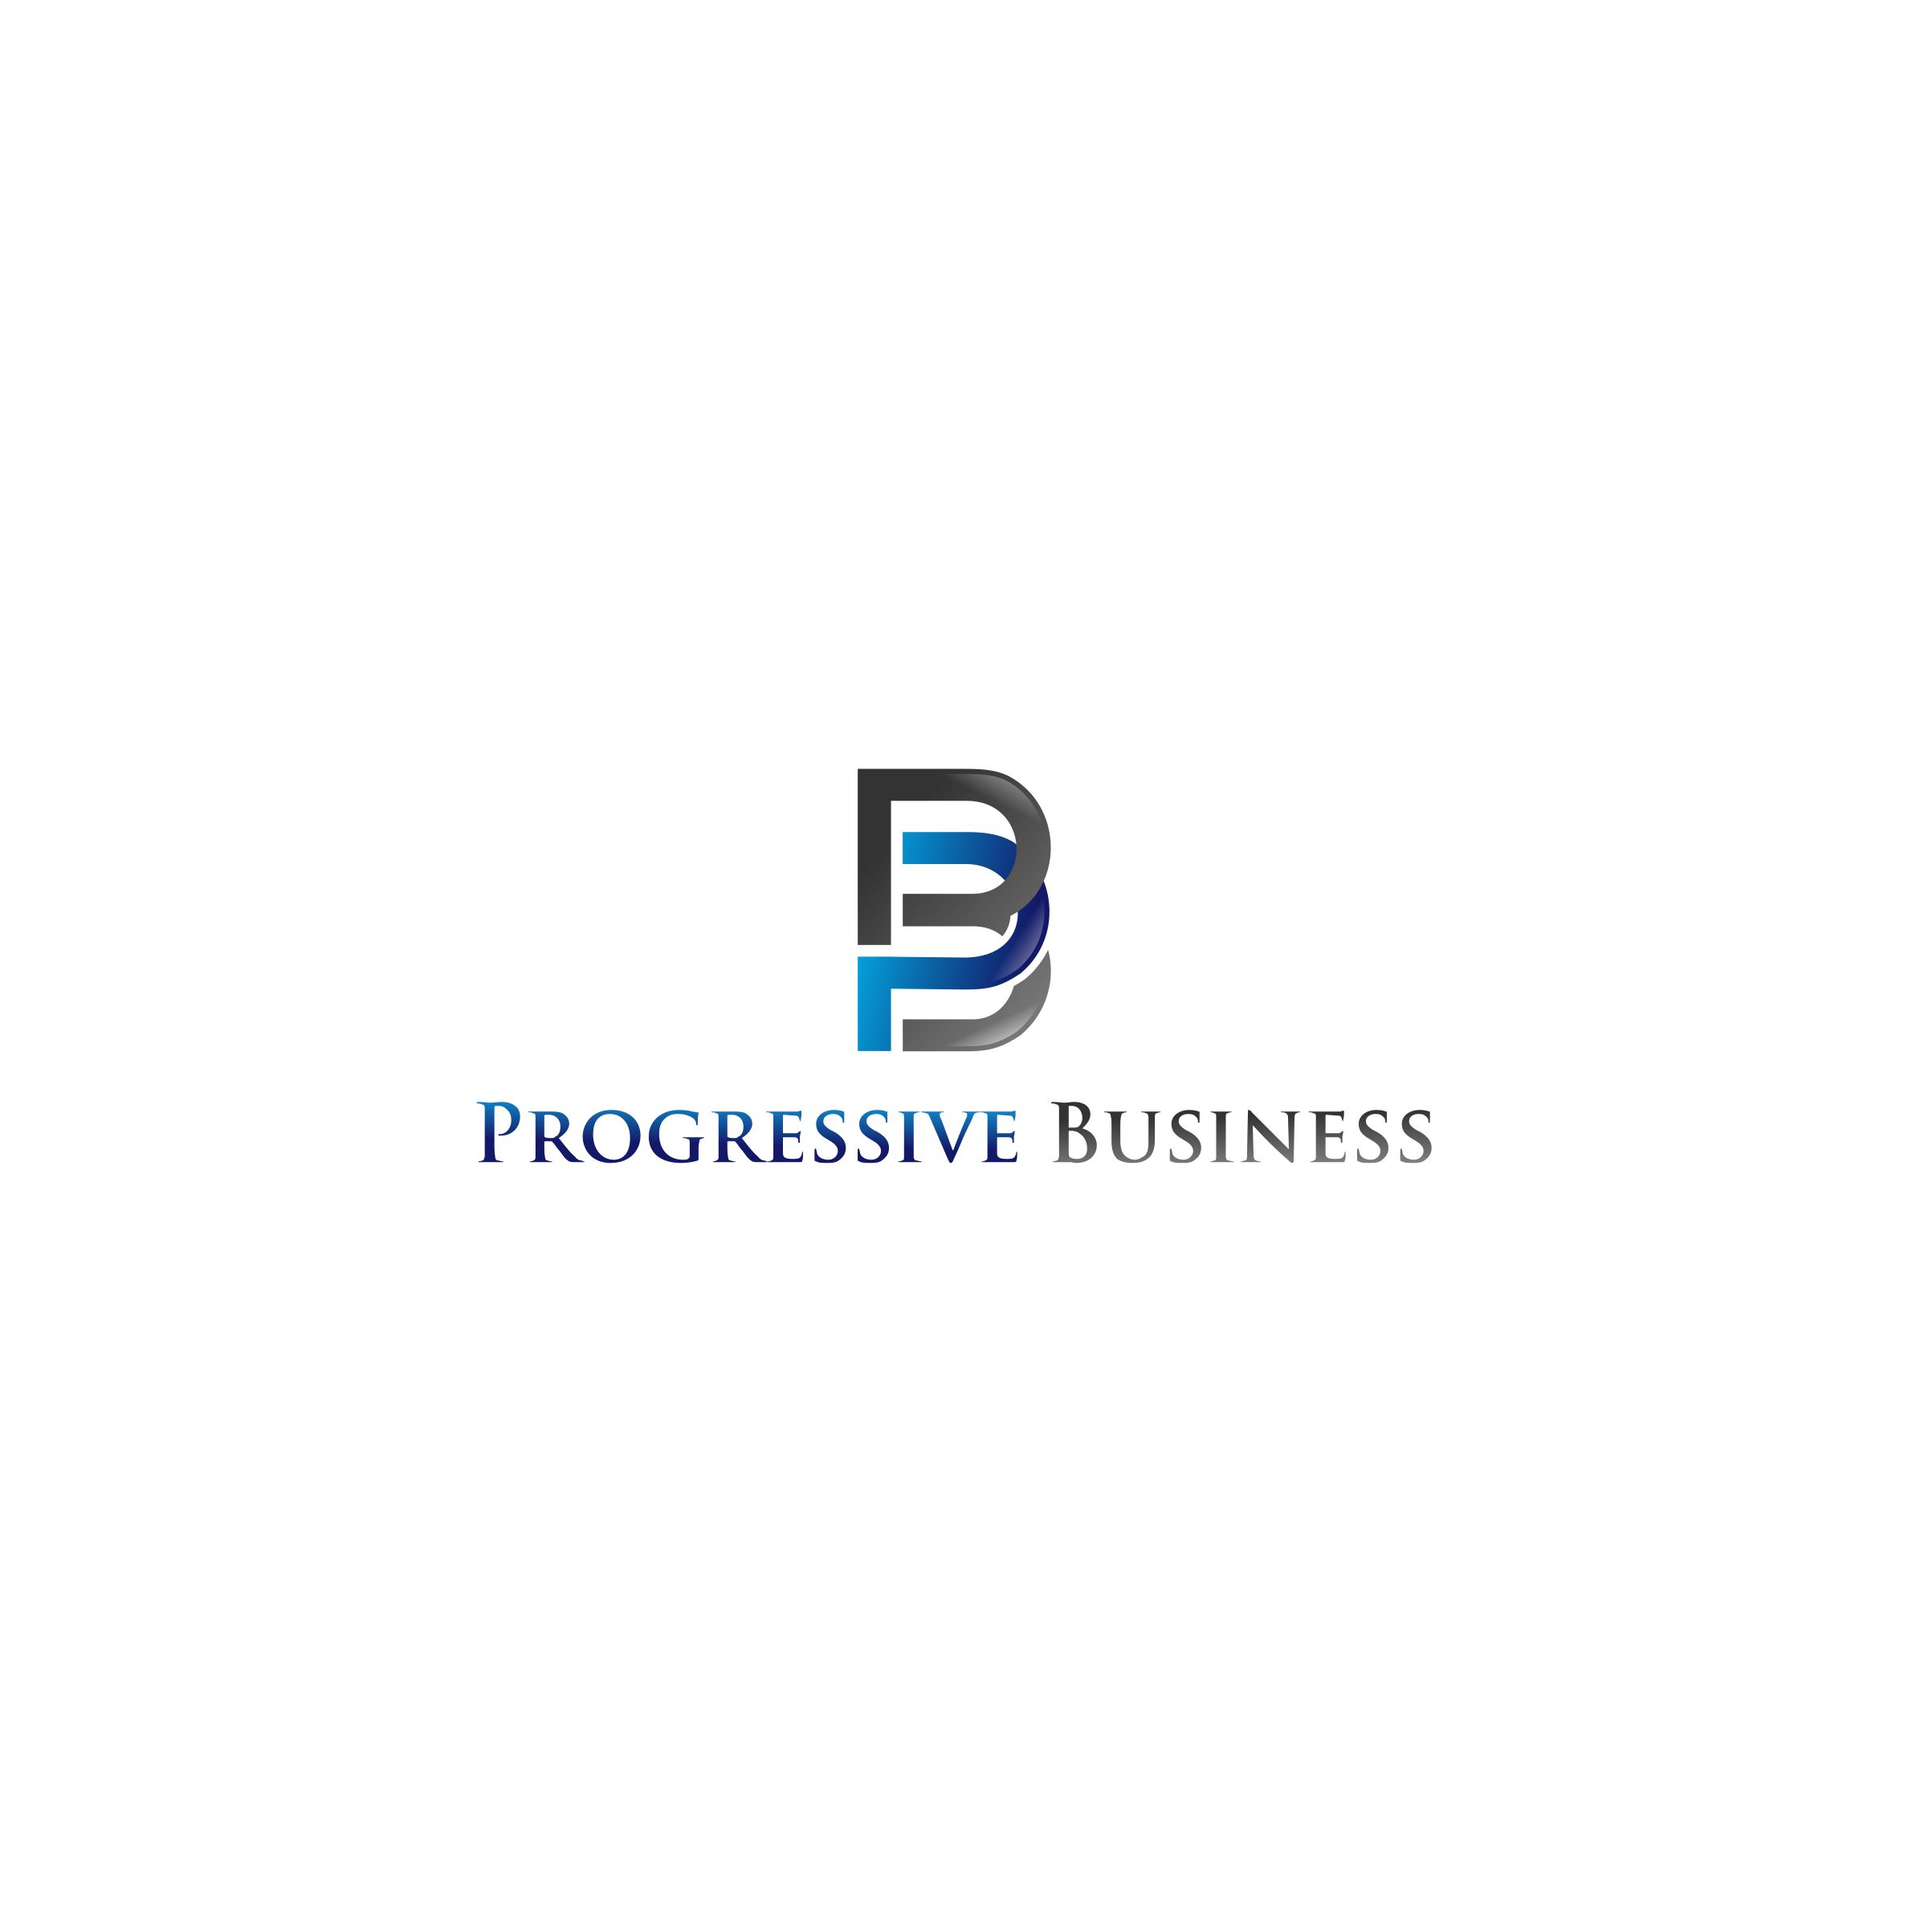 Logo Design by Raymond Garcia - Entry No. 101 in the Logo Design Contest Captivating Logo Design for Progressive Business.